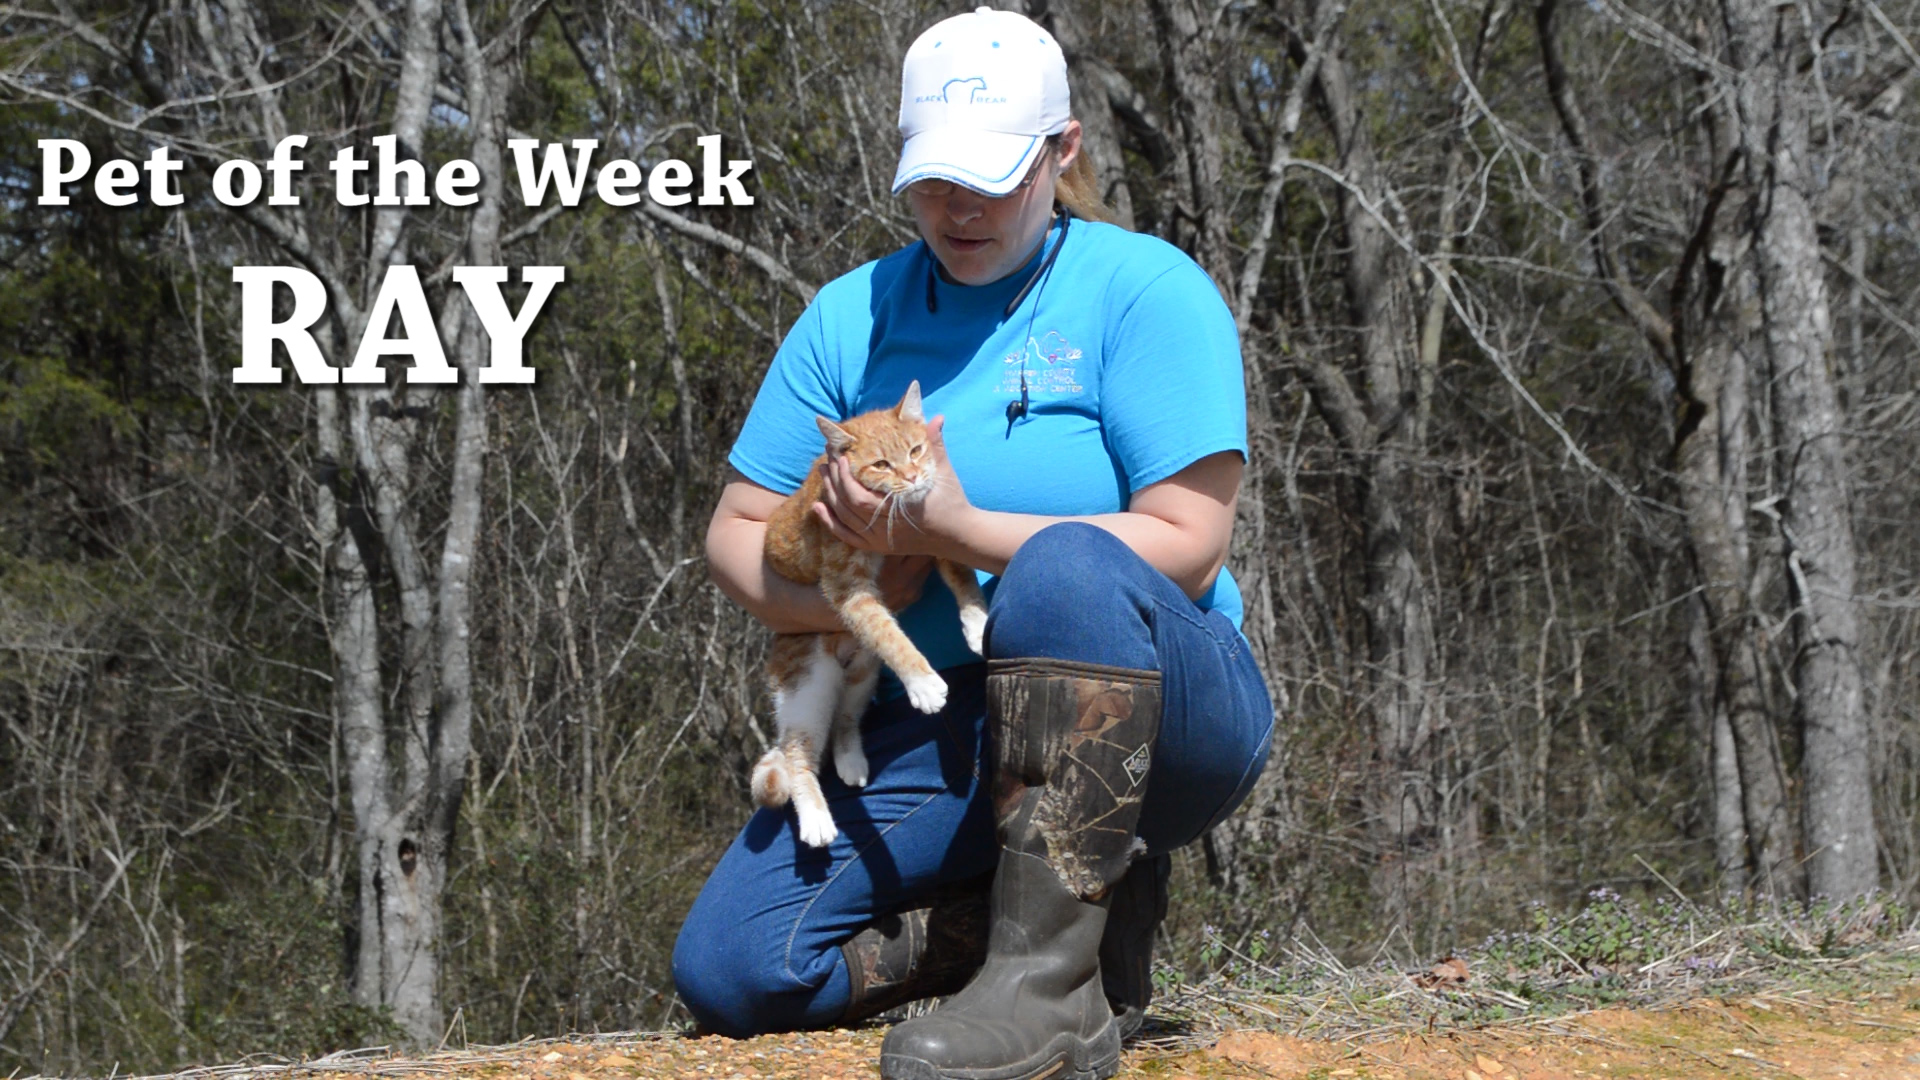 VIDEO - Ray is Pet of the week